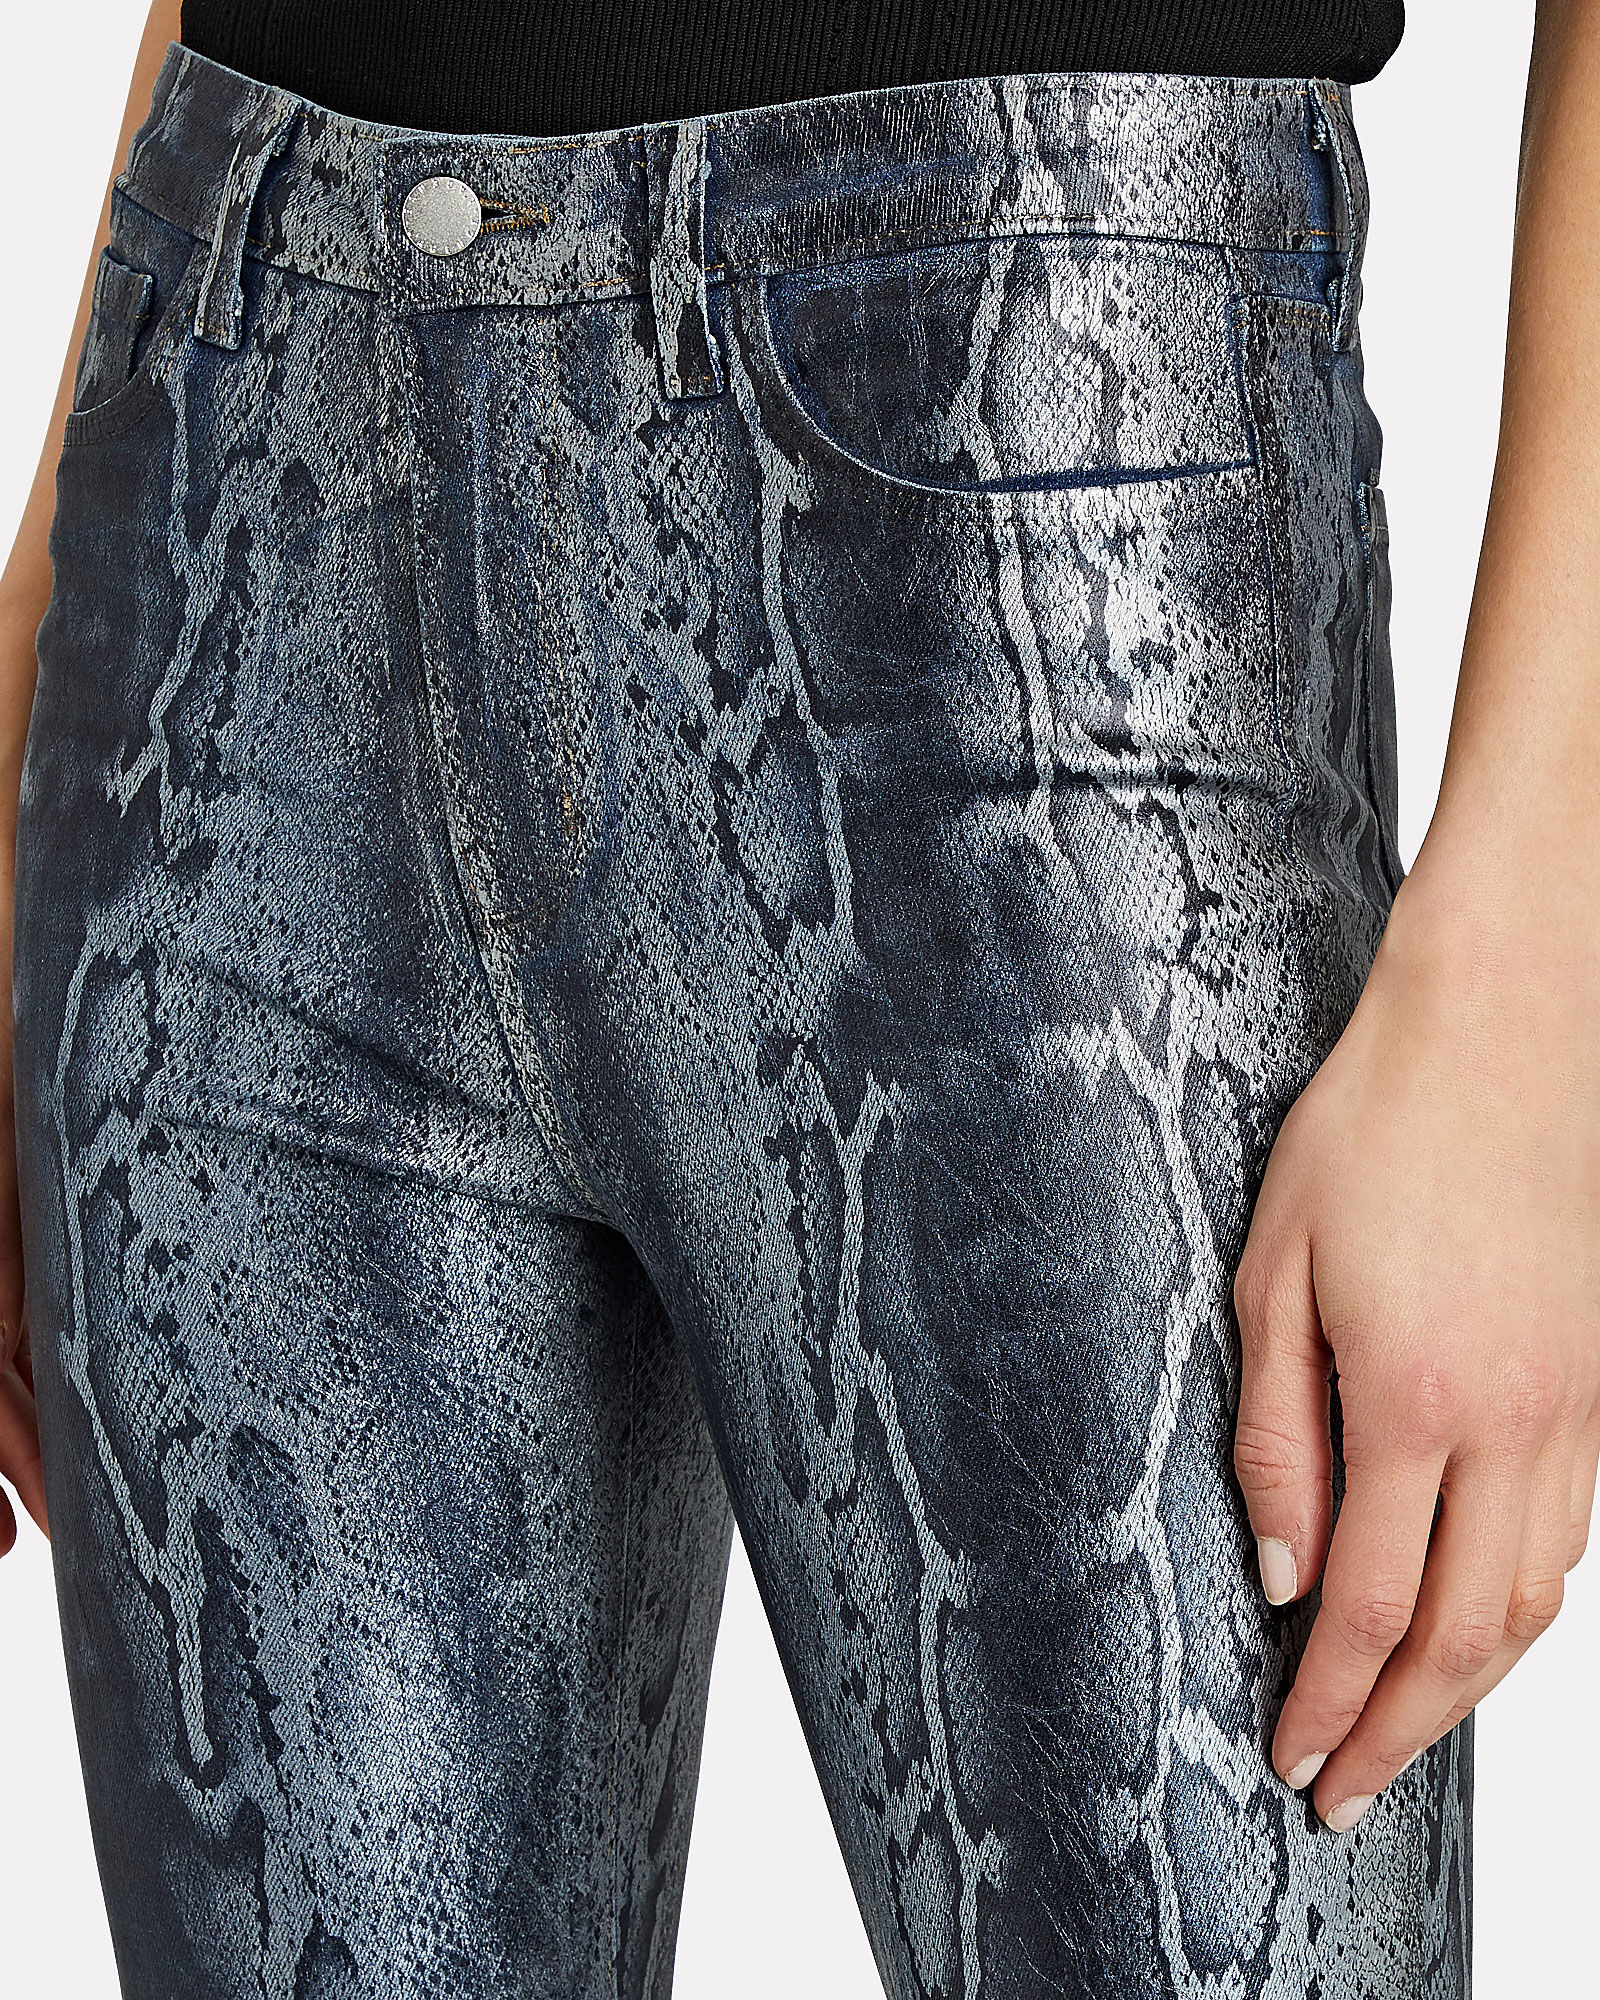 Margot Foiled Snake-Print Skinny Jeans, MULTI, hi-res